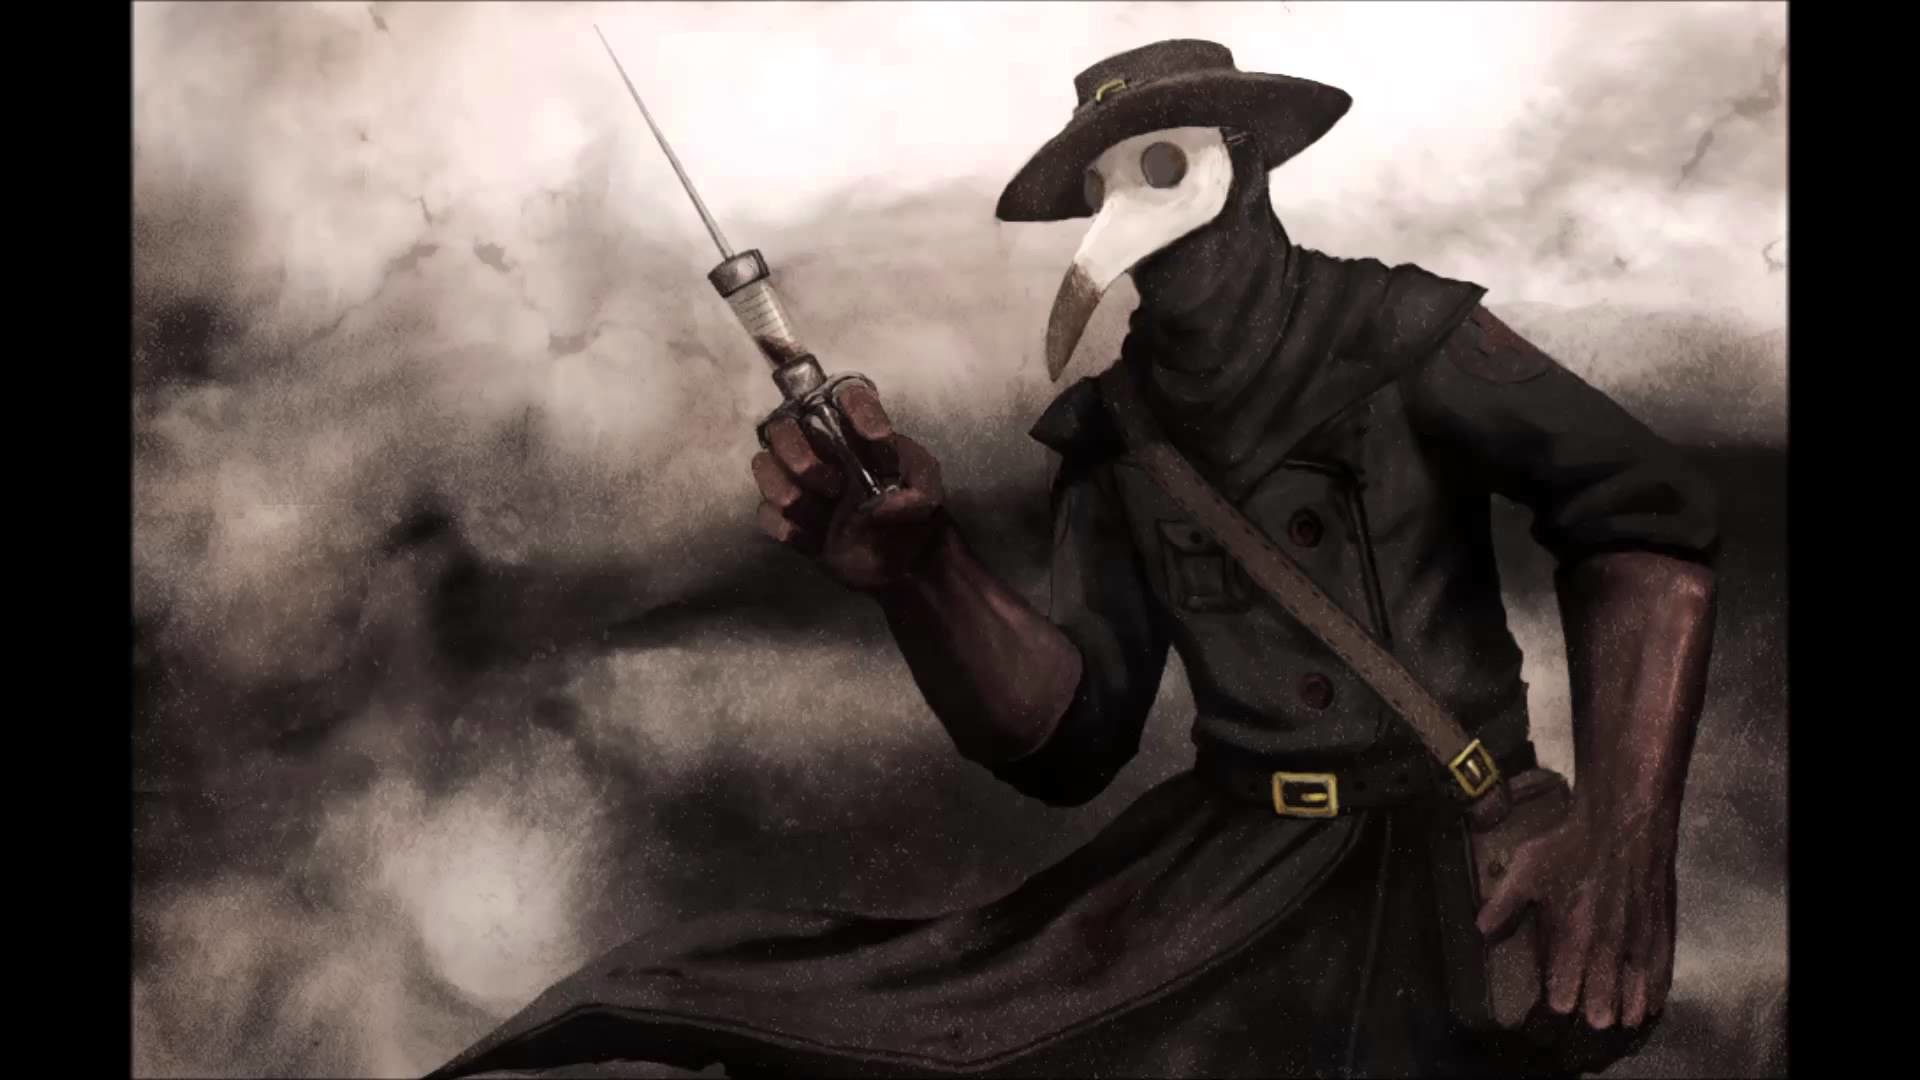 Plague Doctor Wallpaper 78 images 1920x1080